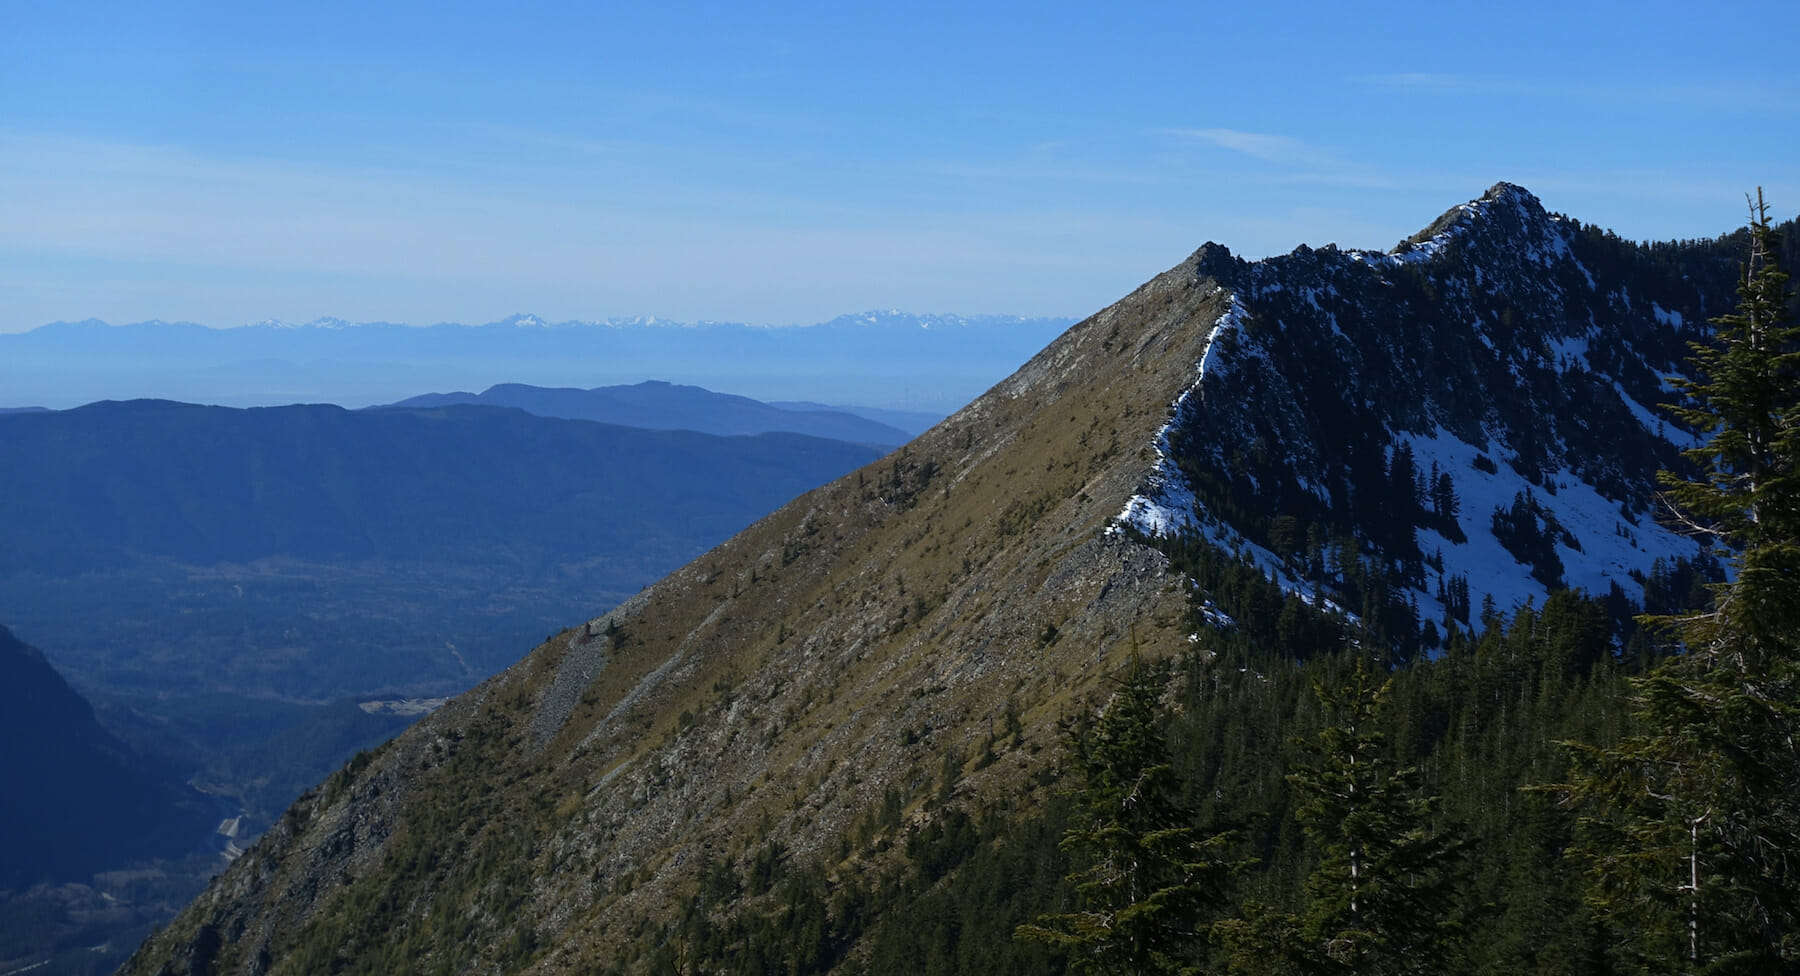 Looking west from Mount Defiance